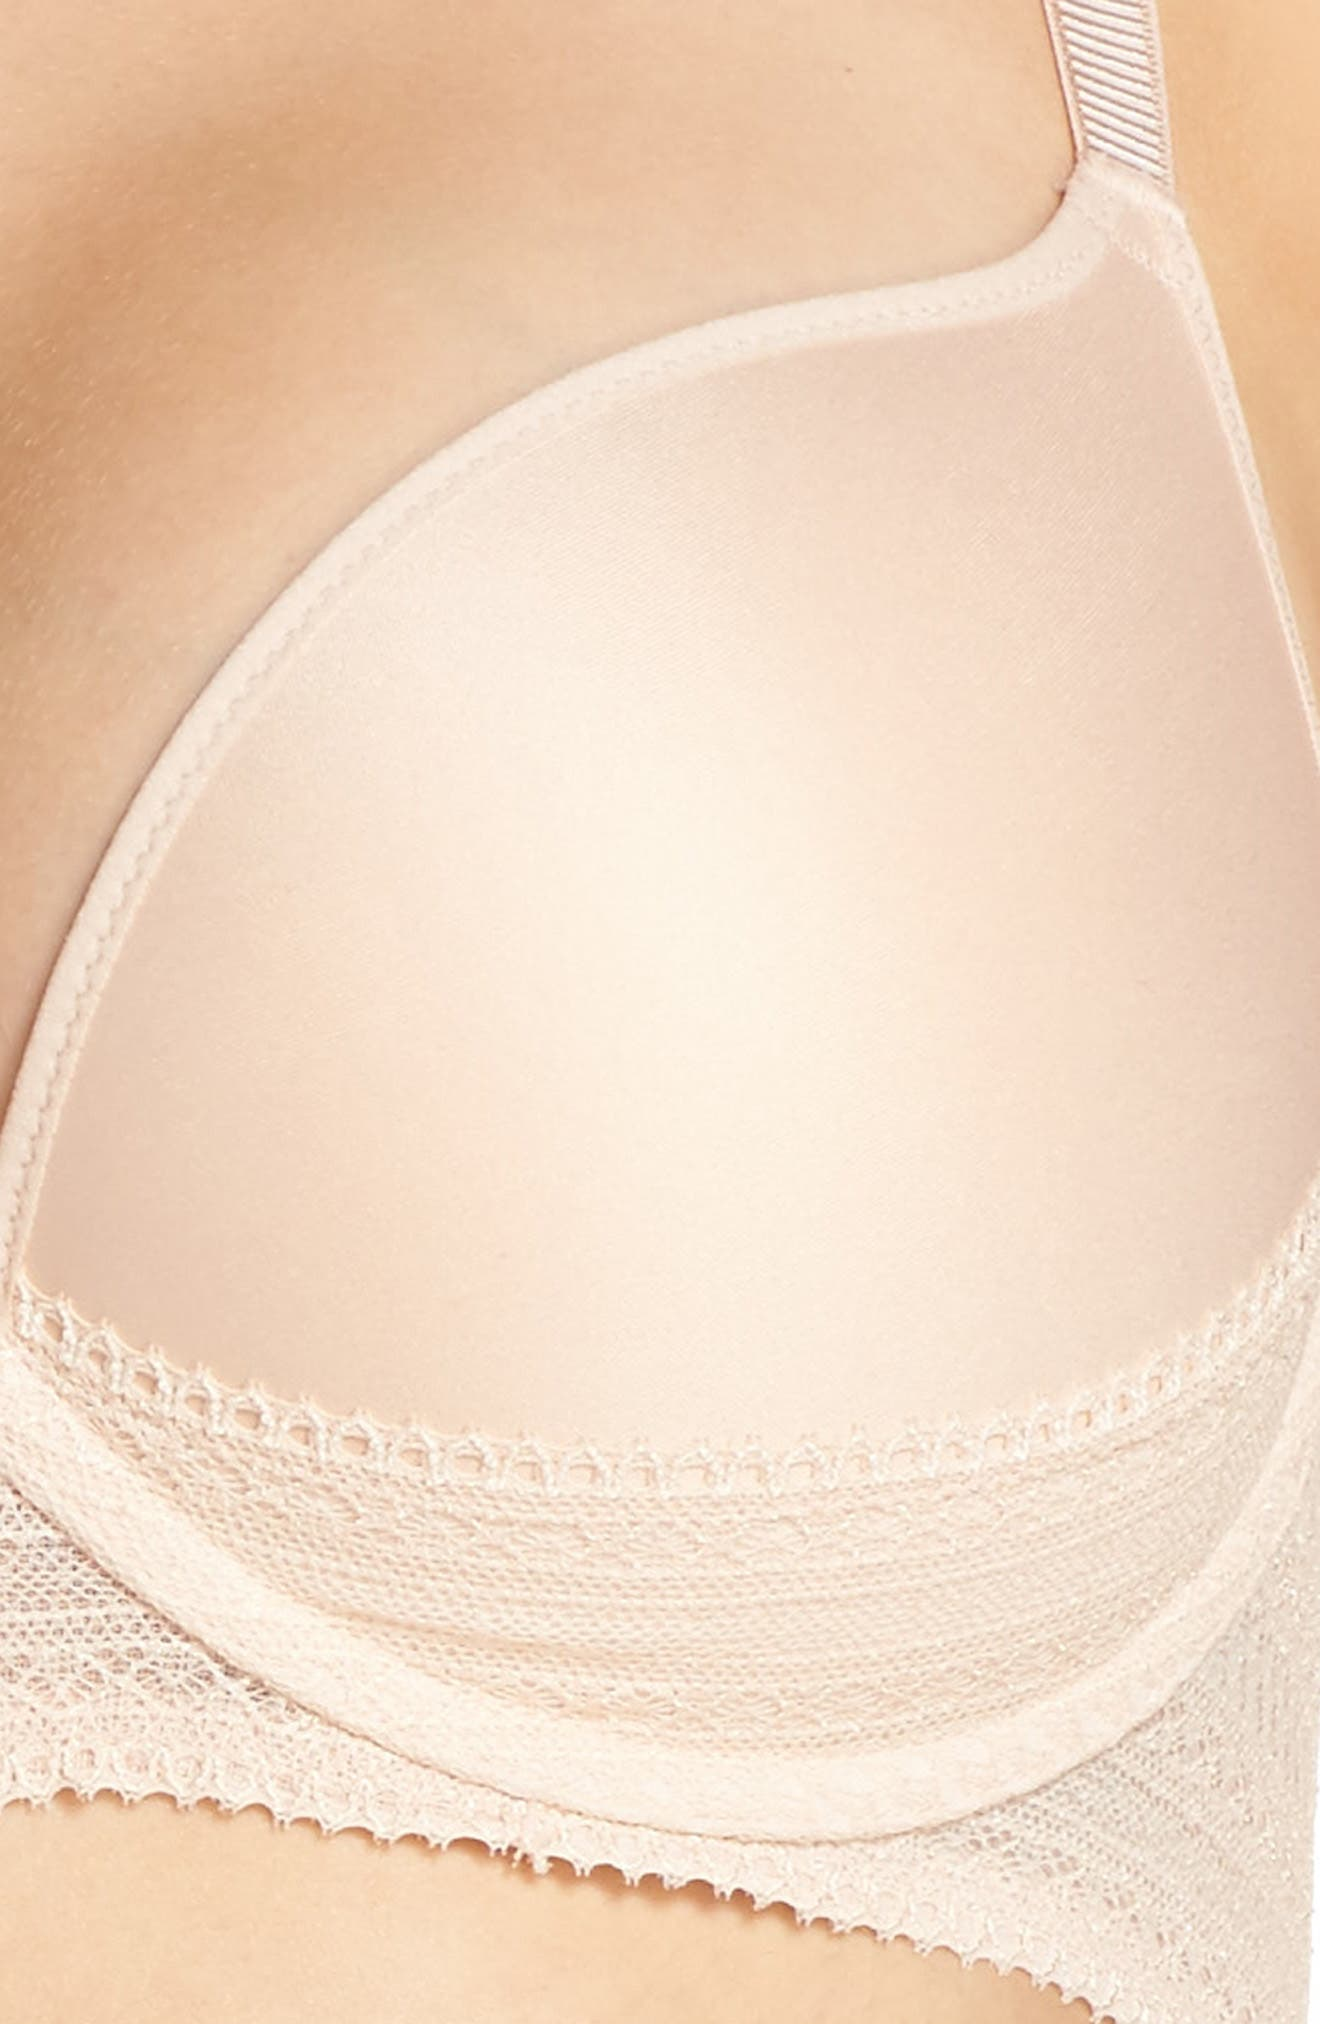 Cheeky Convertible Underwire Push-Up Bra,                             Alternate thumbnail 5, color,                             Nude Blush